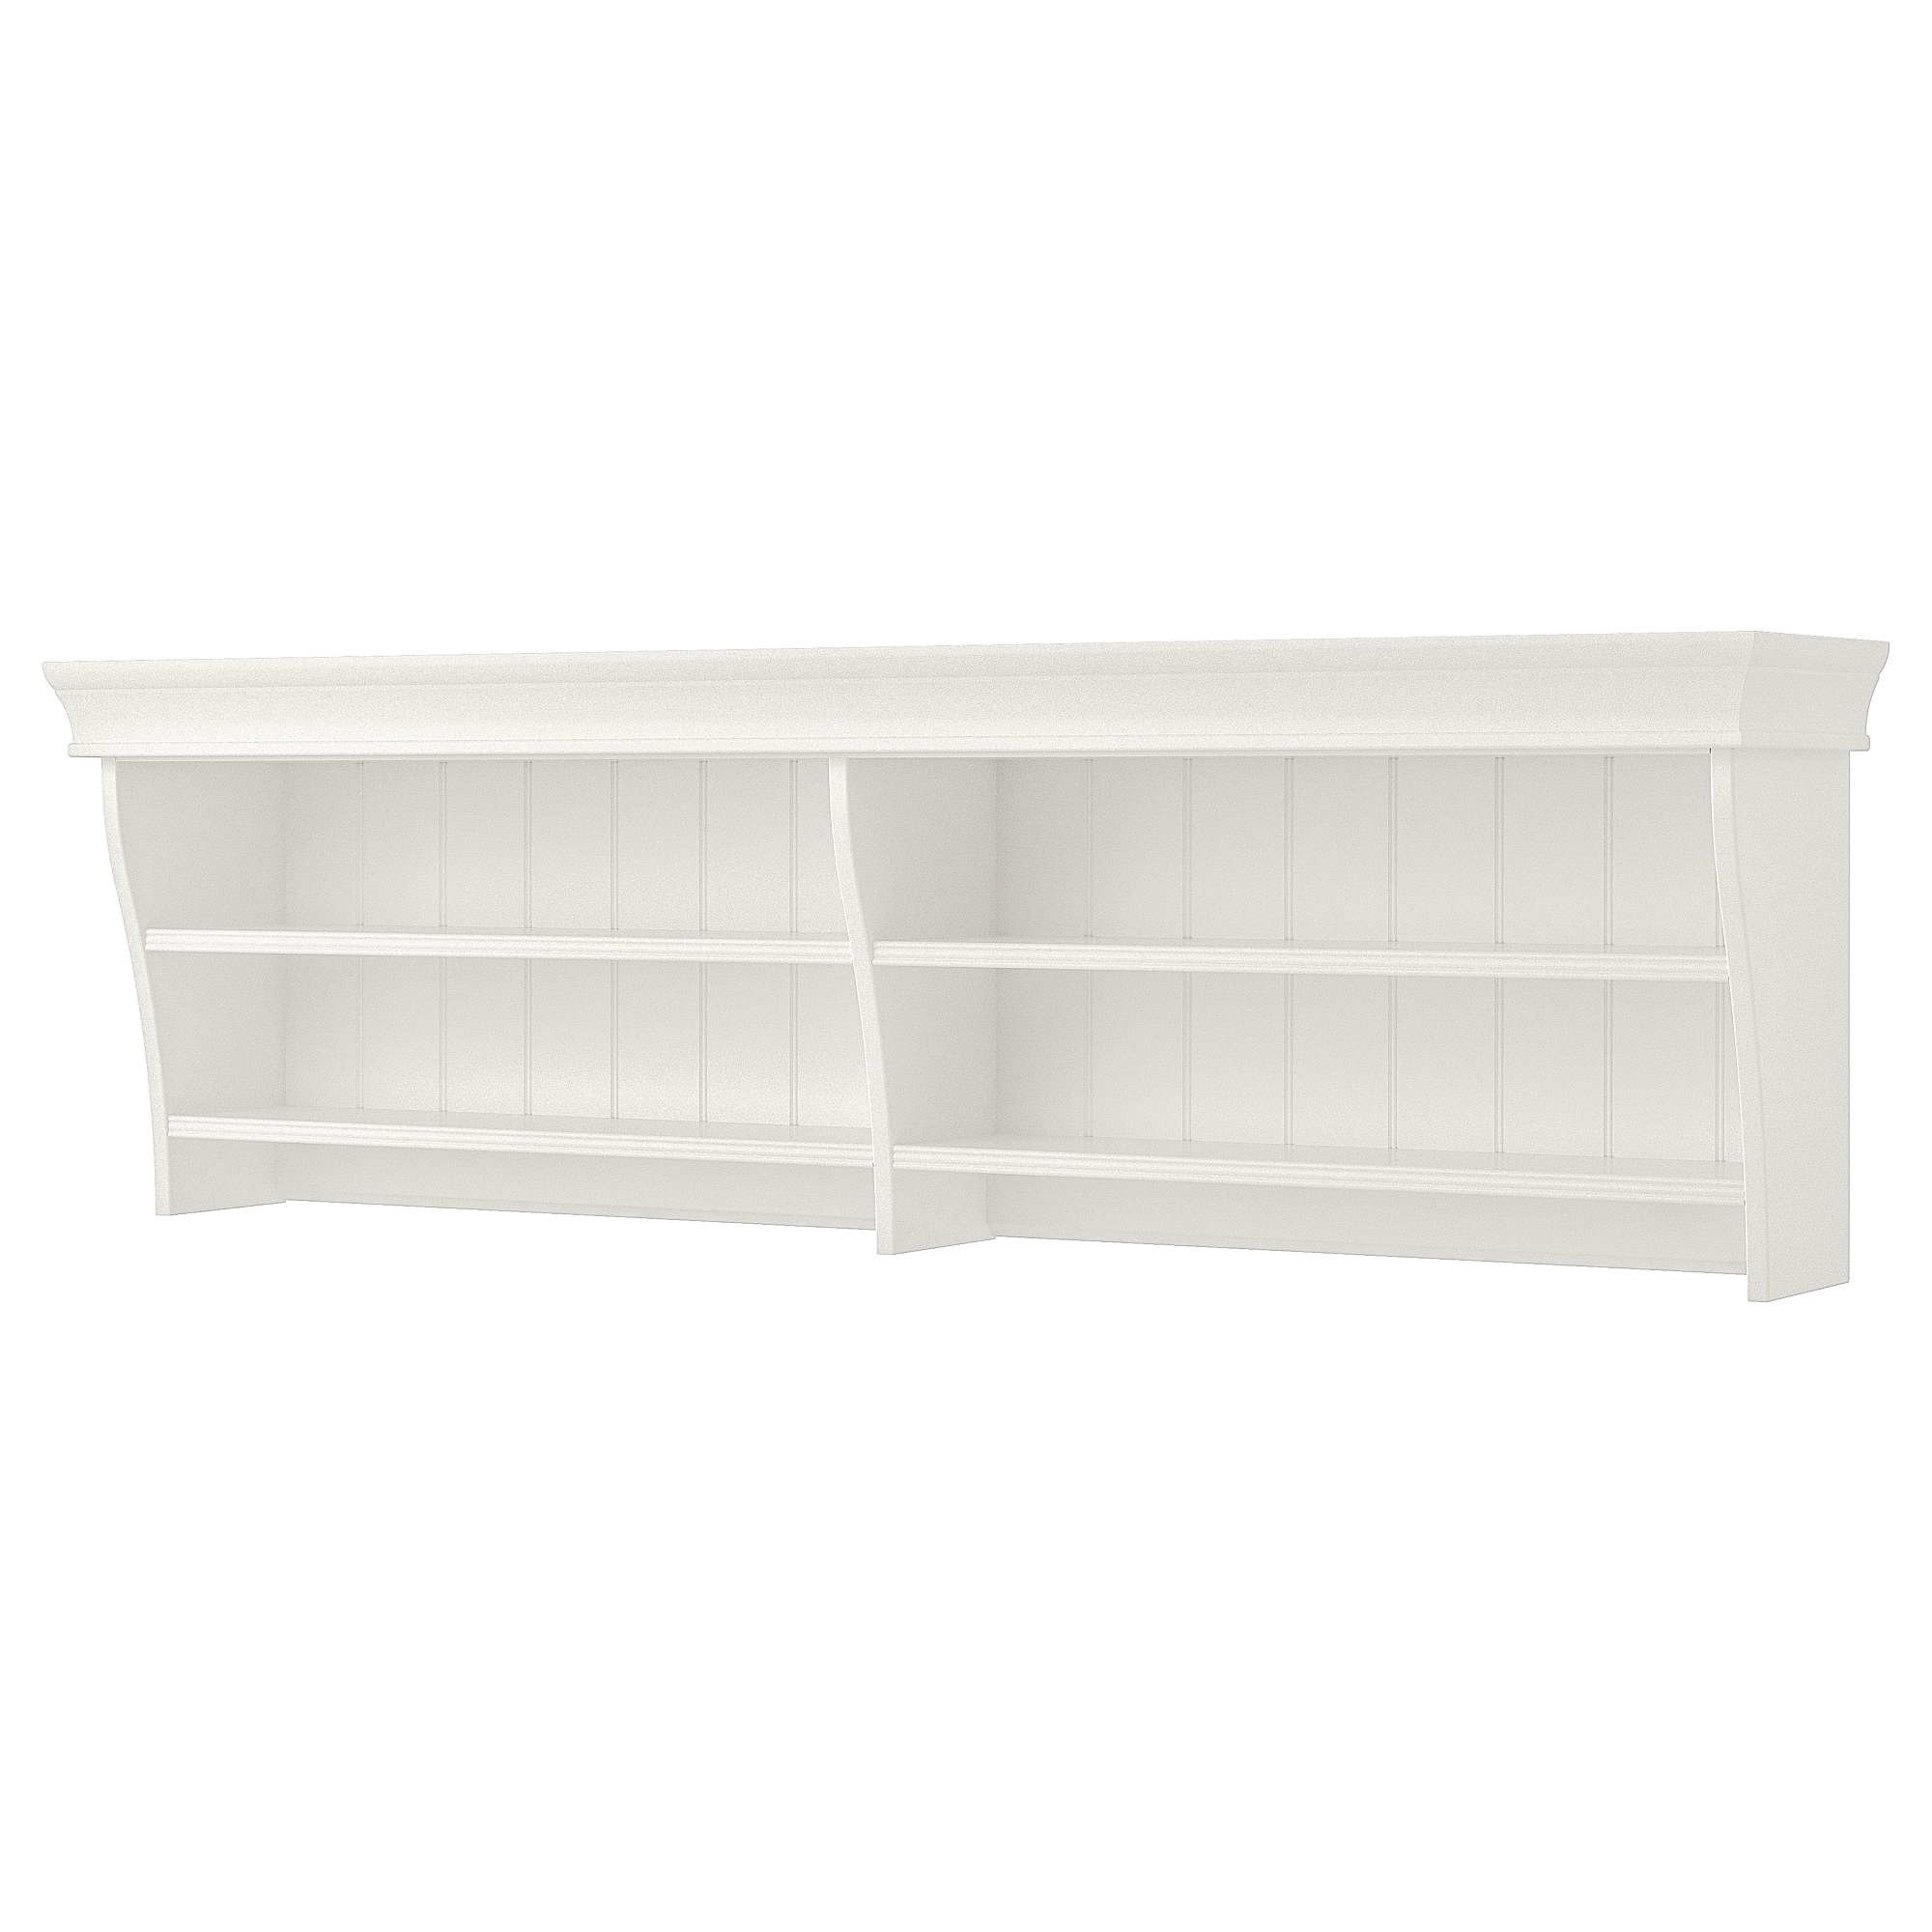 floating shelves wall shelf brackets ikea liatorp bridging white cube garage sports organizer flat screen mount with low wide shelving unit deep command strips for shower timber